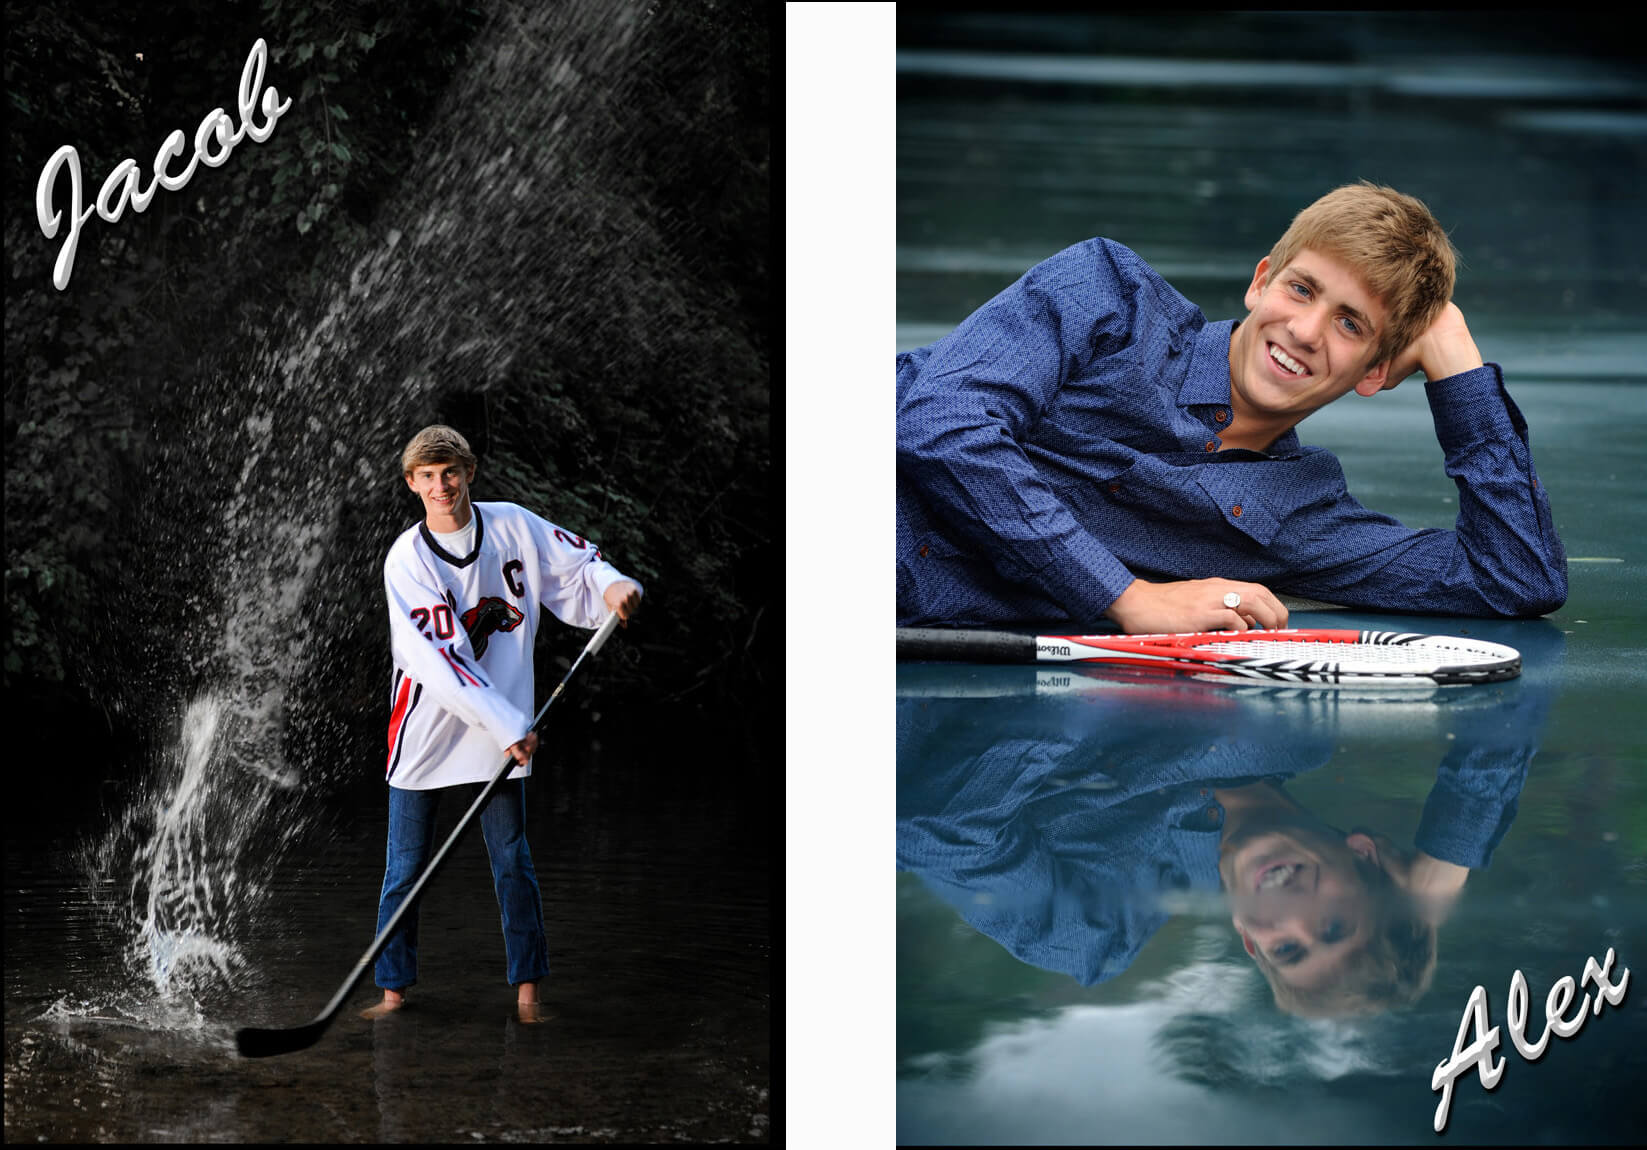 Many Michigan high school seniors want to showcase their favorite sports. I like to find new ways to shoot them that haven�����������������t been done before like playing hockey in a river or shooting tennis in the rain at Cranbrook.